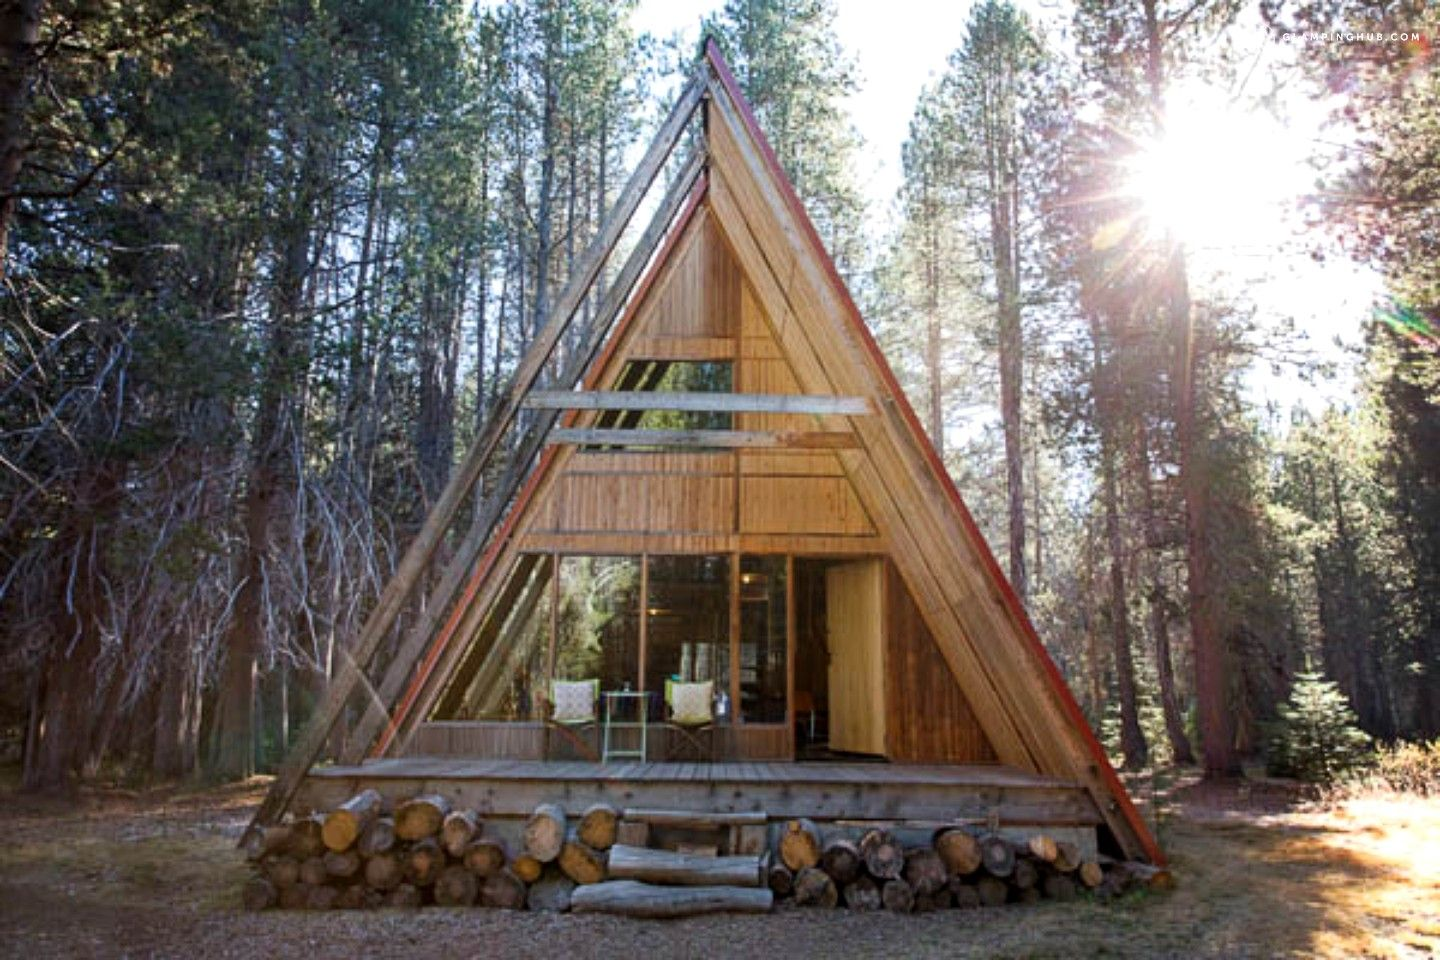 home rental deck house holiday a log cabin and cozy park ponderosa inside natl sequoia dreamtime in new unwind cabins national unplug w